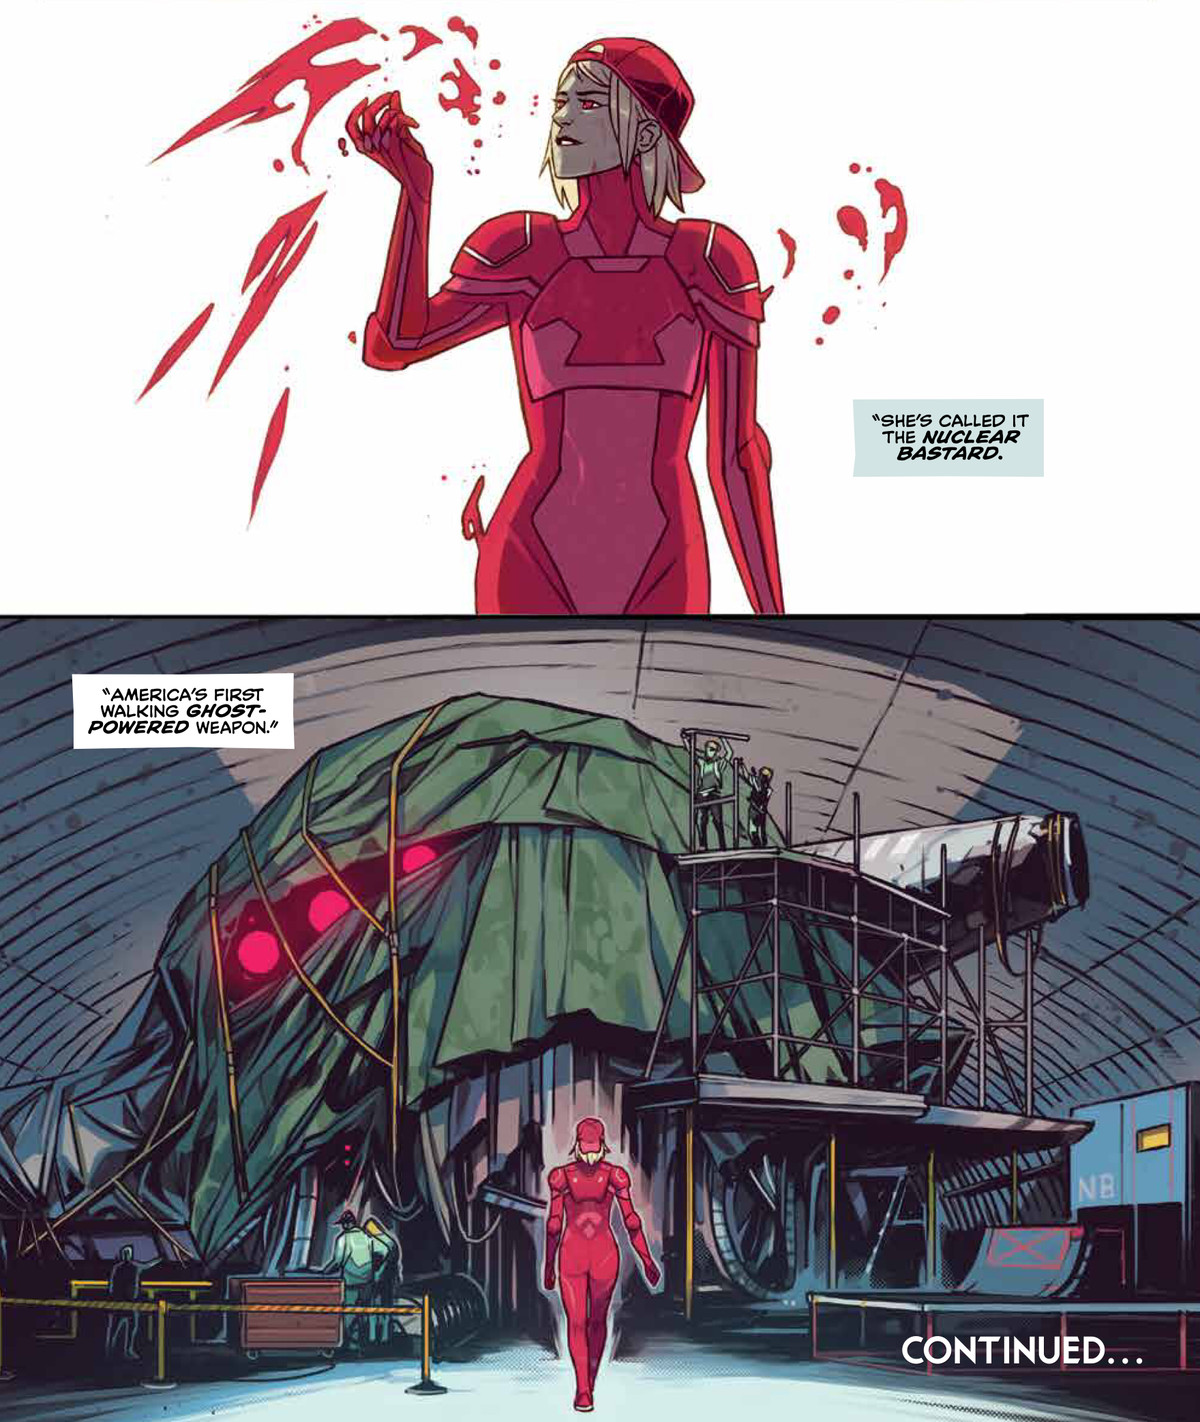 """A woman in a red backwards baseball cap and a red jumpsuit surrounded by floating red shapes walks into an airplane hangar where a giant shape is concealed under a tarp, a narration box says """"She's called it the Nuclear Bastard, America's first walking ghost-powered weapon,"""" in Home Sick Pilots #5, Image Comics (2021)."""